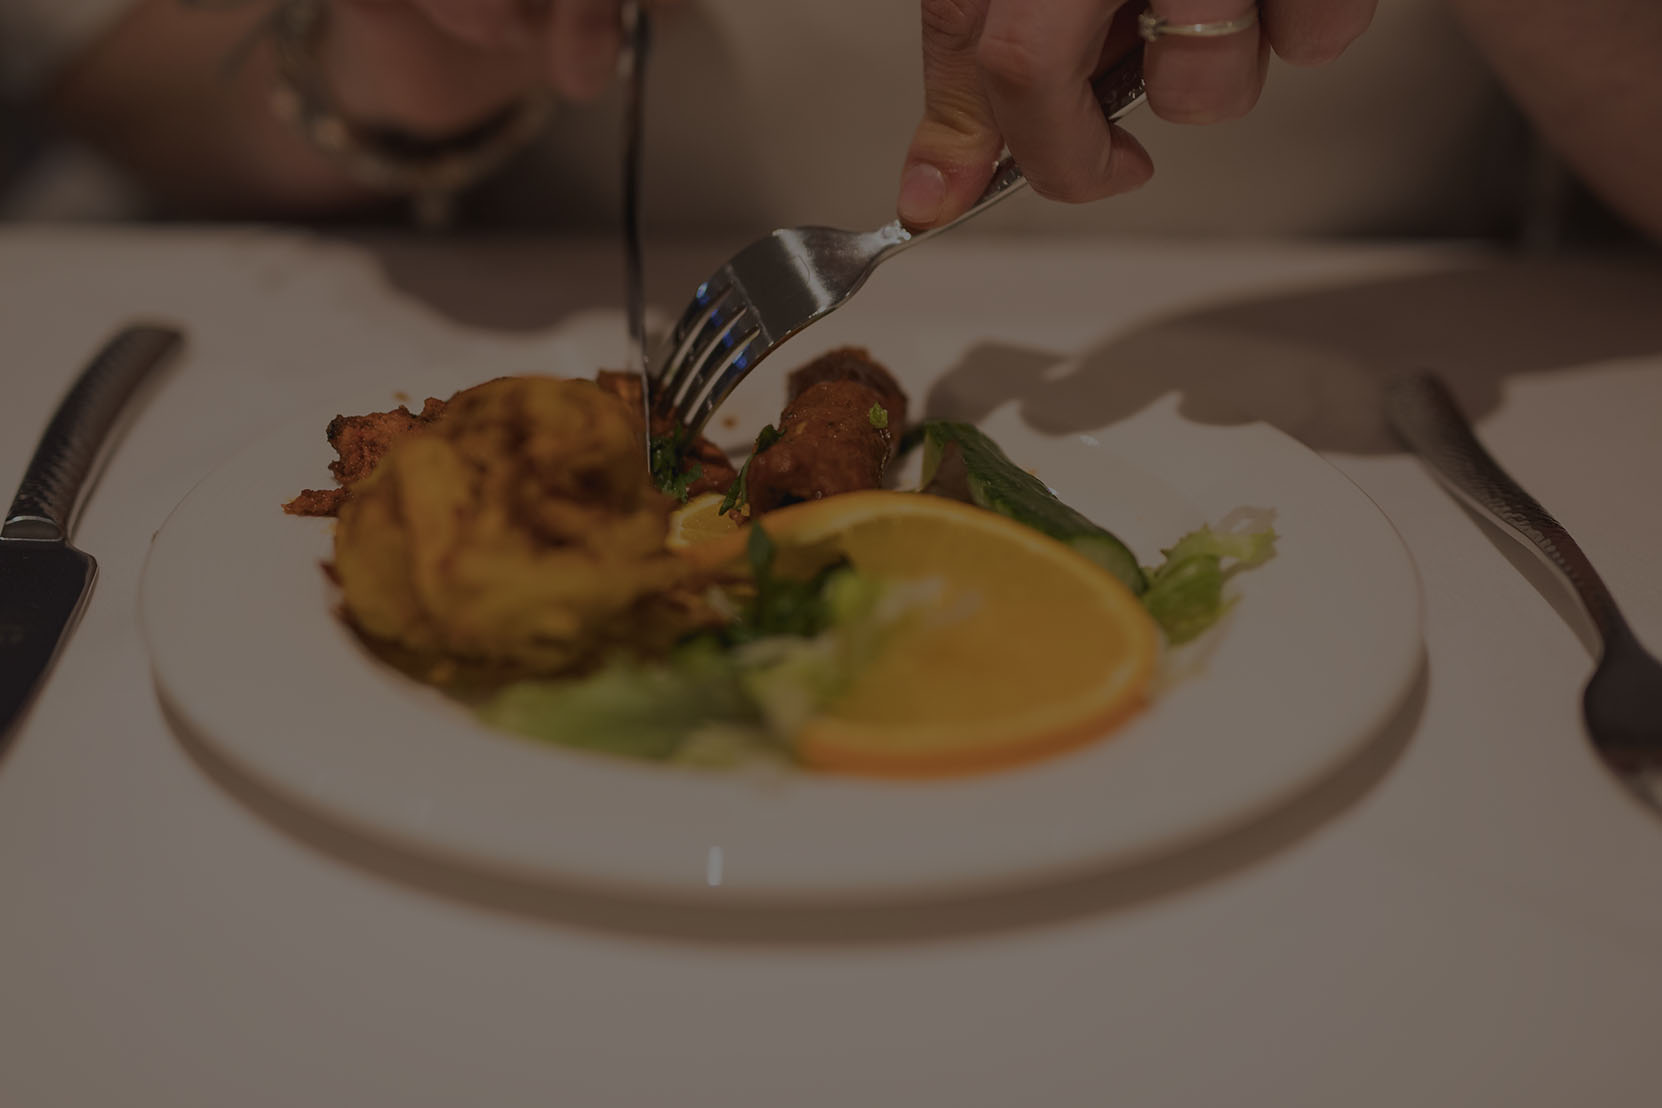 A person eating a starter at the restaurant.